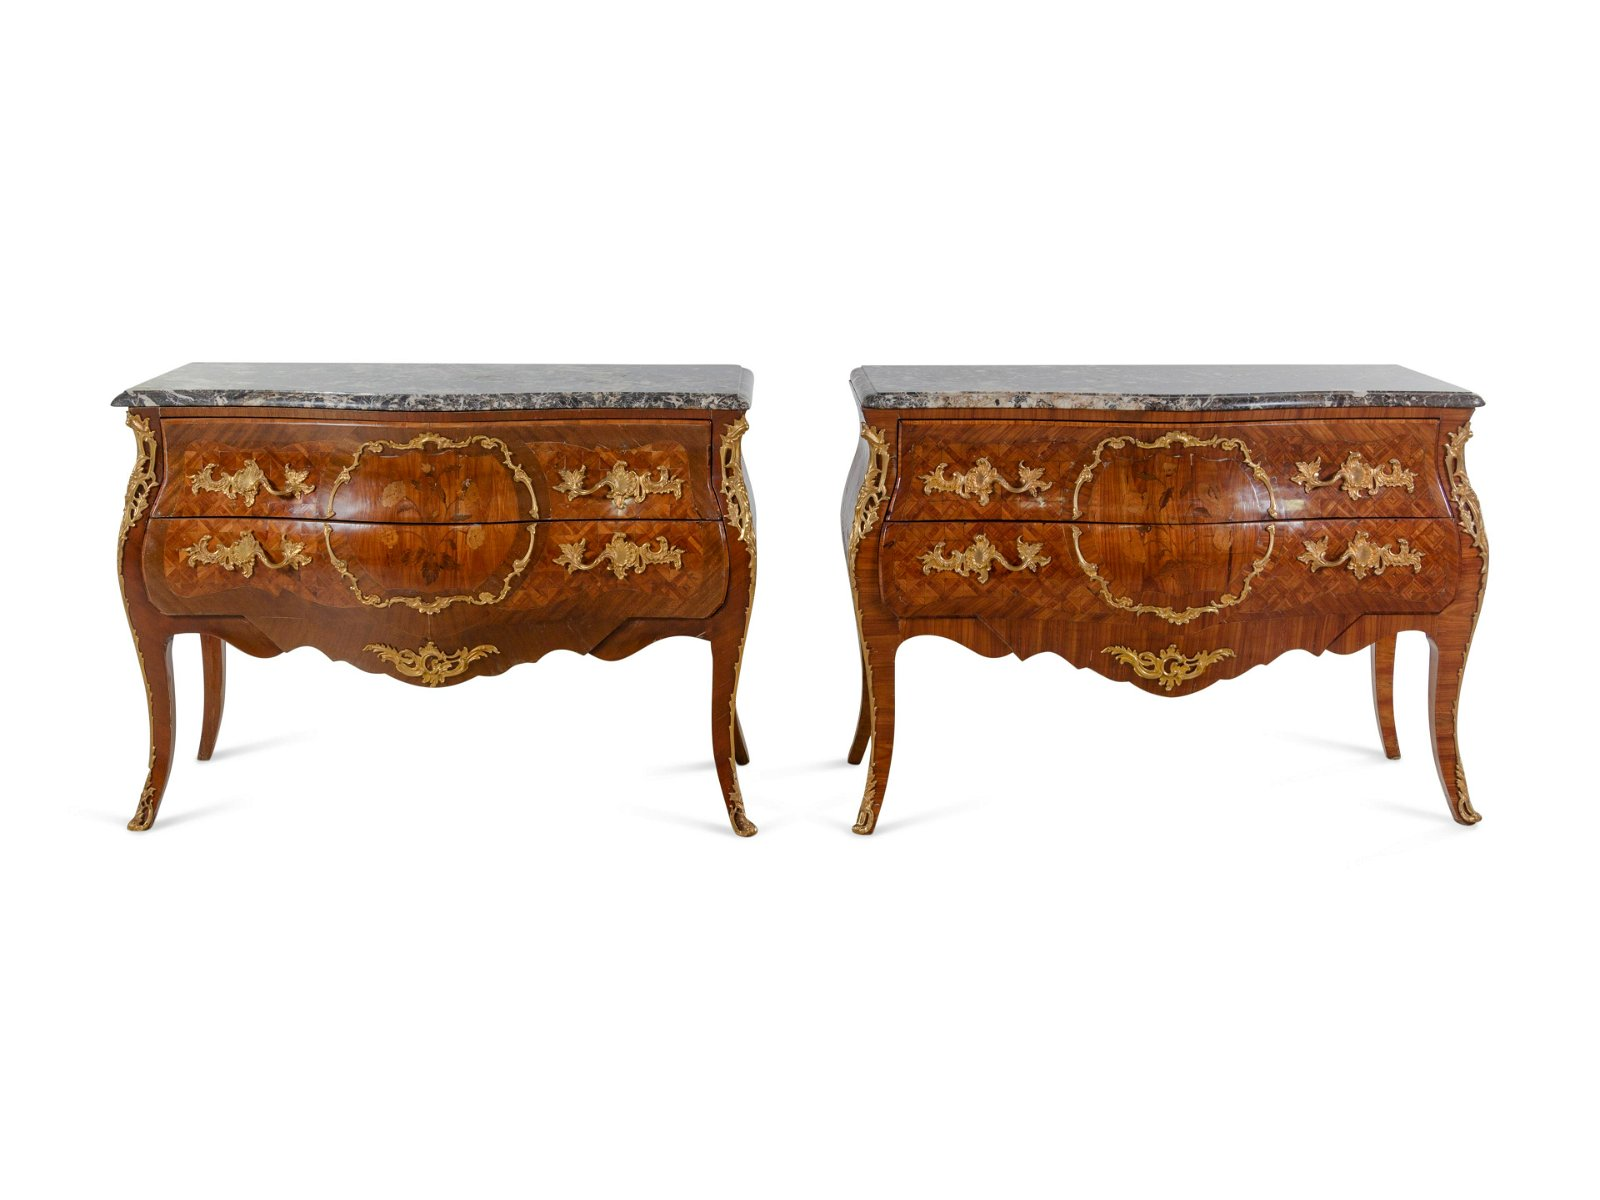 A Pair of Louis XV Style Gilt Bronze Mounted Sans